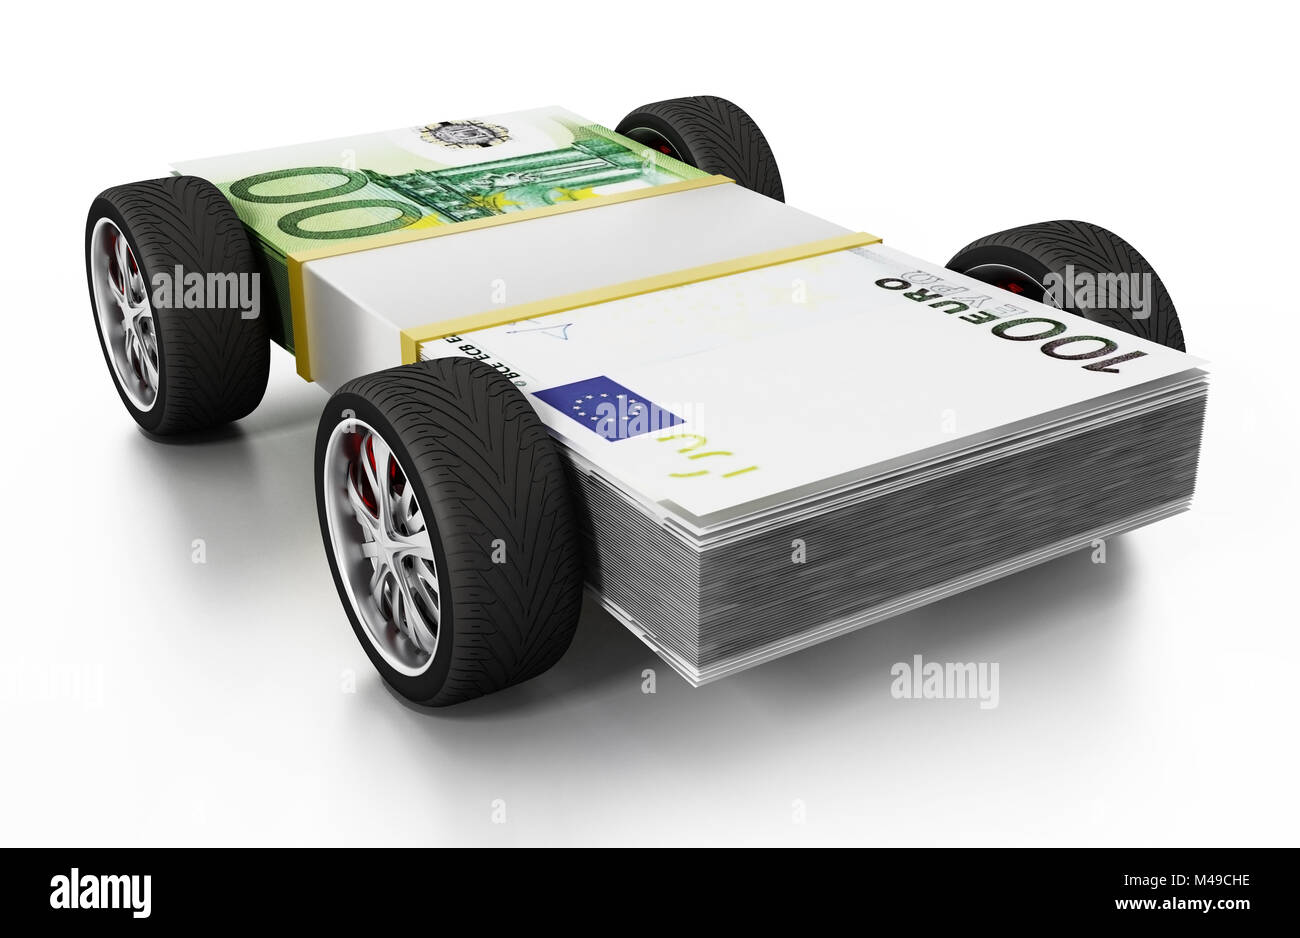 Race tyres connected to 100 Euro bills. 3D illustration. - Stock Image